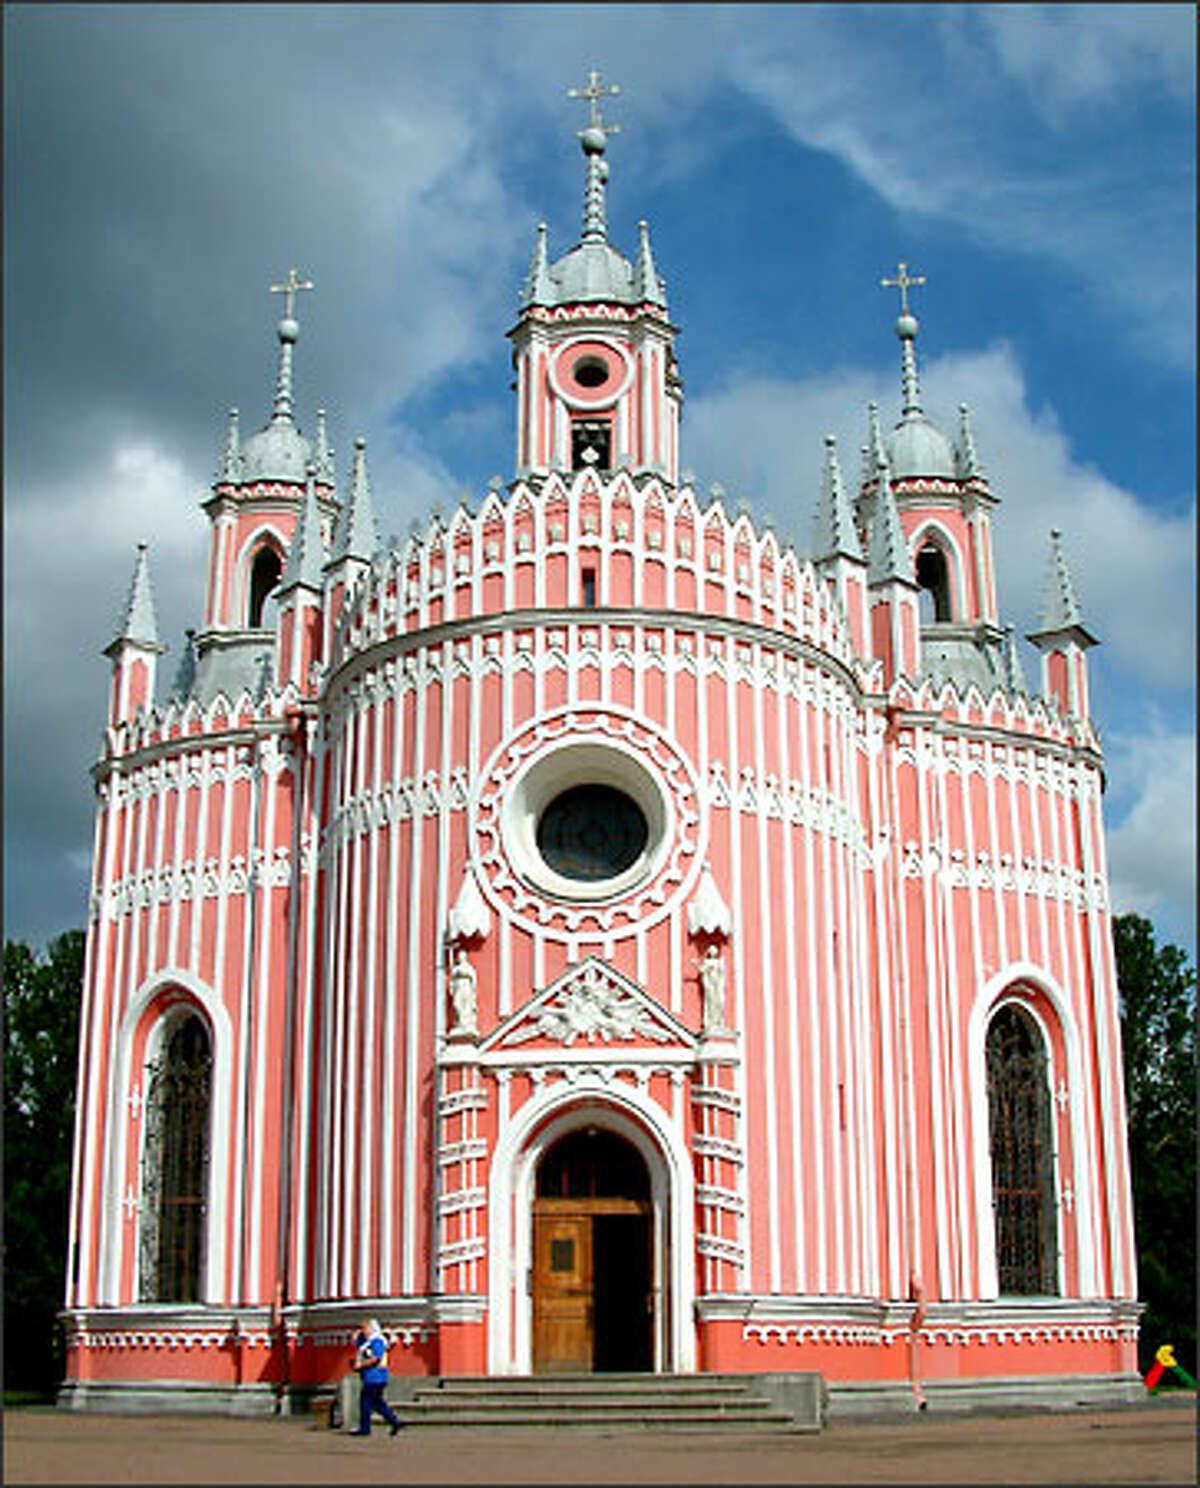 The pink and white Chesma Church (built in 1780) more closely resembled an edible confection than a place of worship.